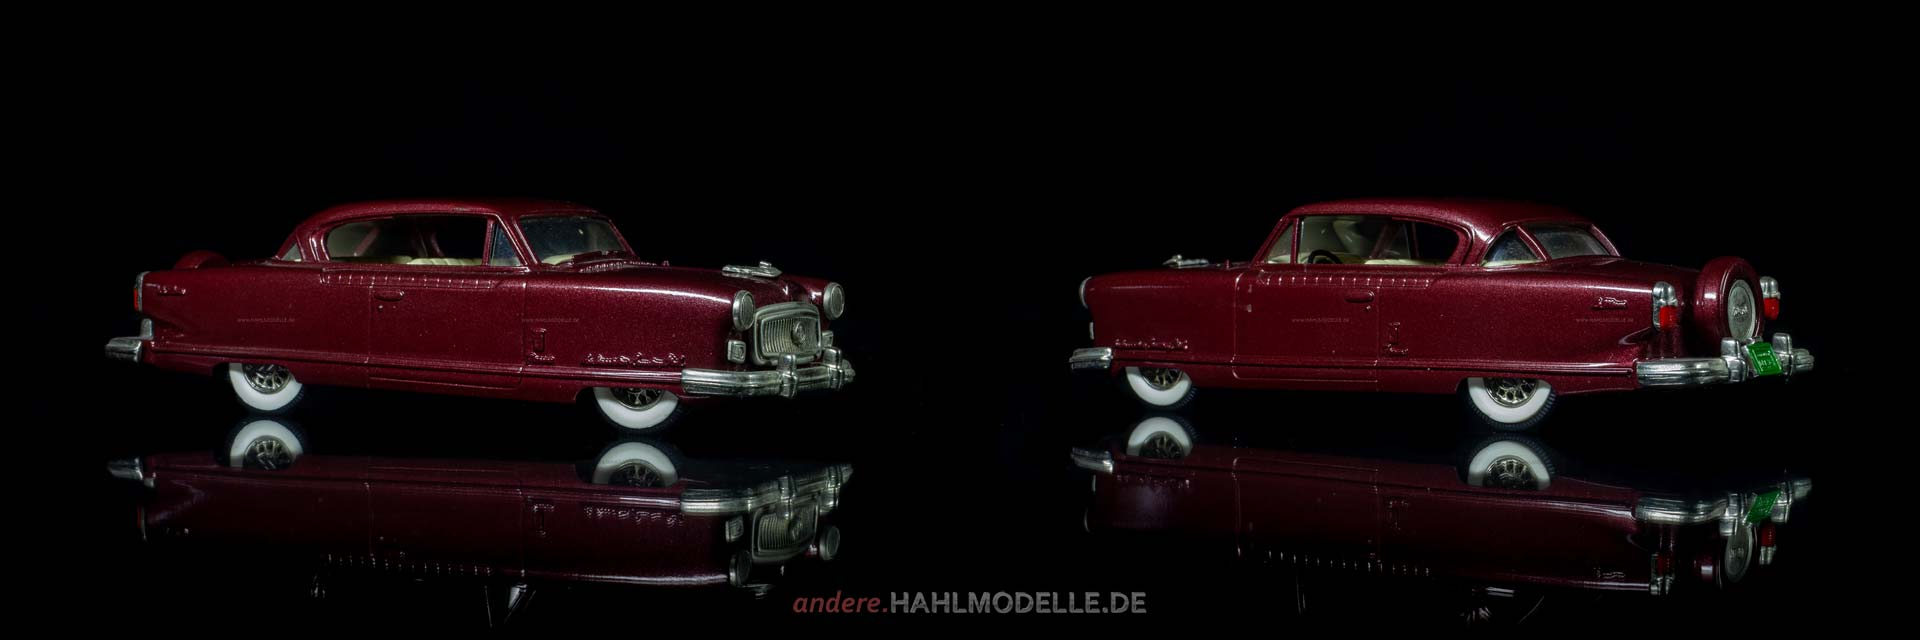 Nash Ambassador Super Sedan two-doors | Limousine | Brooklin Models | 1:43 | www.andere.hahlmodelle.de